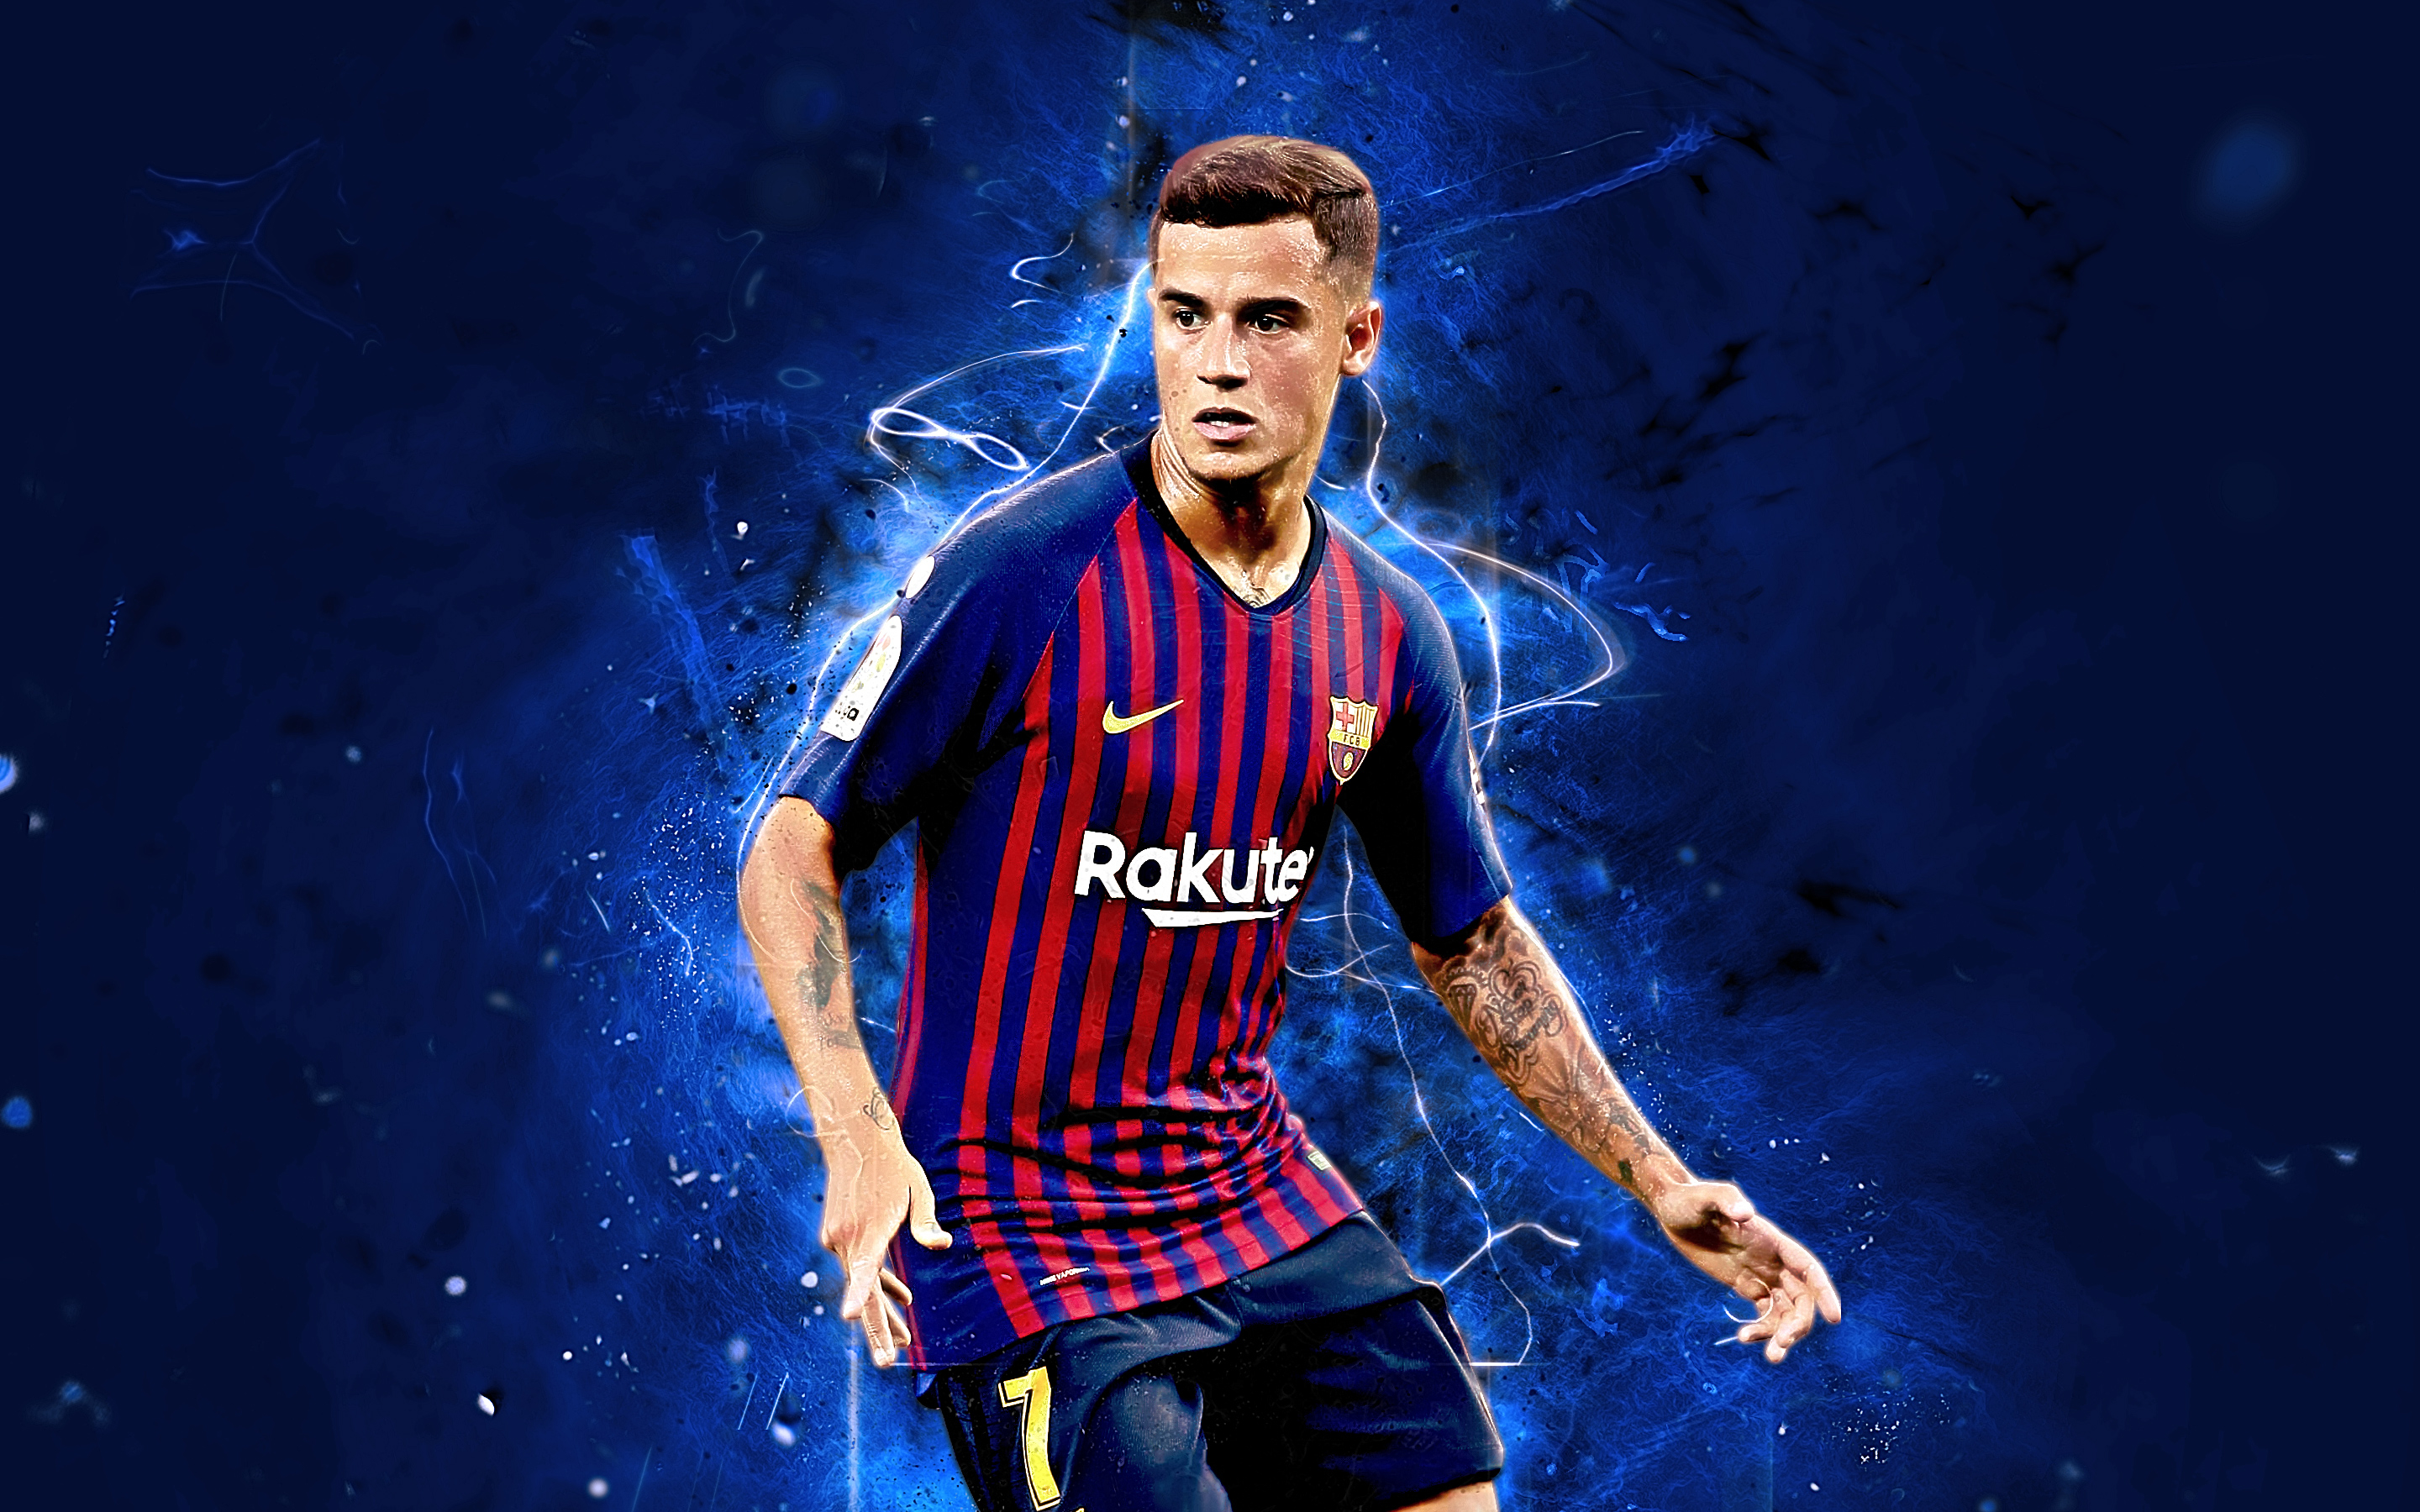 Philippe coutinho bar a hd wallpaper background image - Coutinho wallpaper hd ...